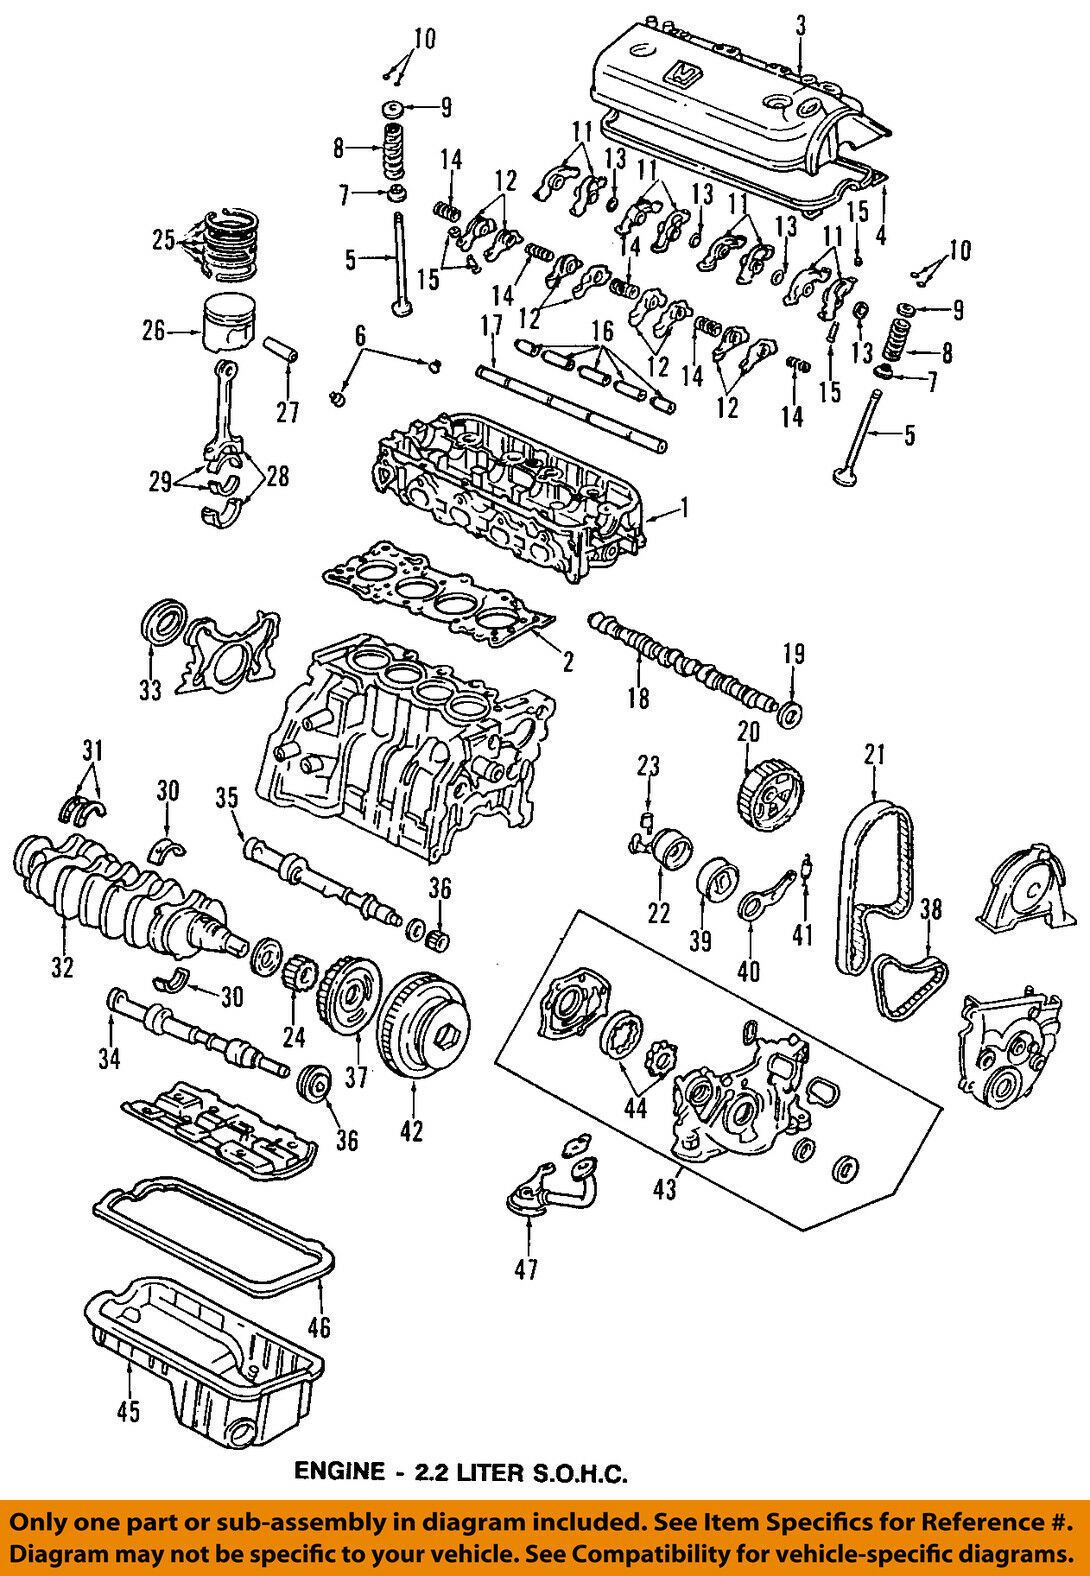 honda engine diagram automotive wiring diagram library u2022 rh seigokanengland co uk 2009 honda fit engine diagram 2007 honda fit sport engine diagram